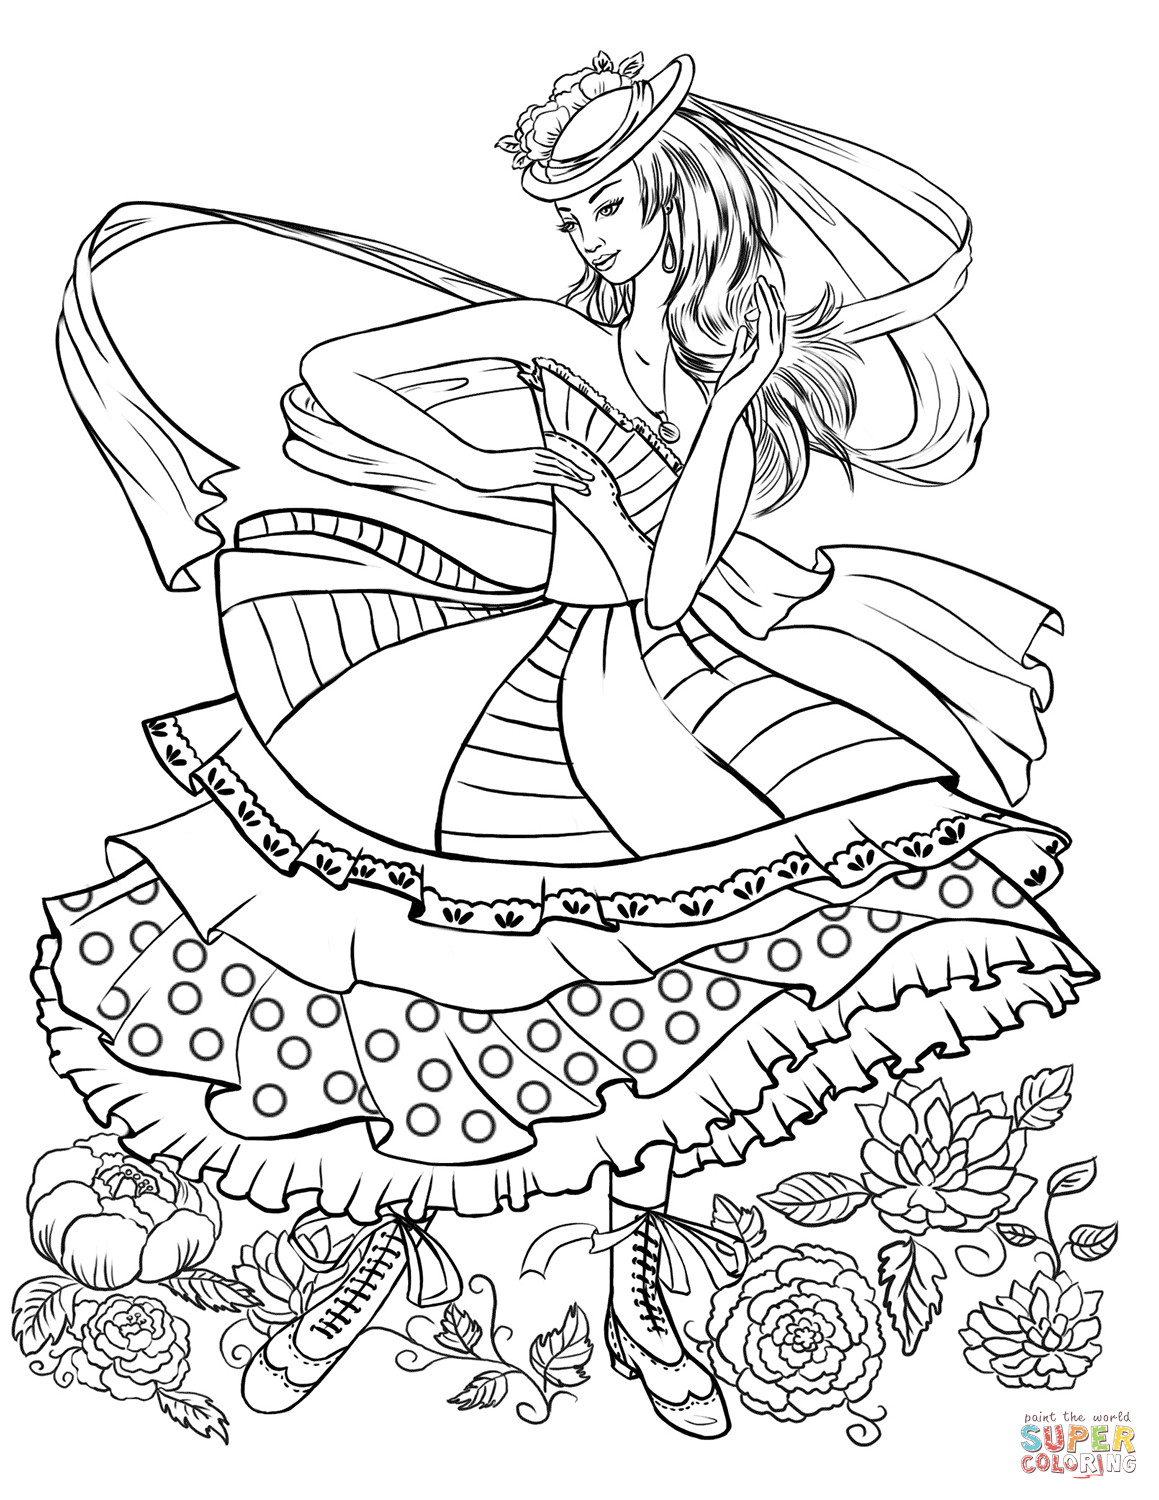 Best ideas about Fashion Coloring Pages For Girls . Save or Pin Girl Dancing in a Vintage Fashion Clothing coloring page Now.